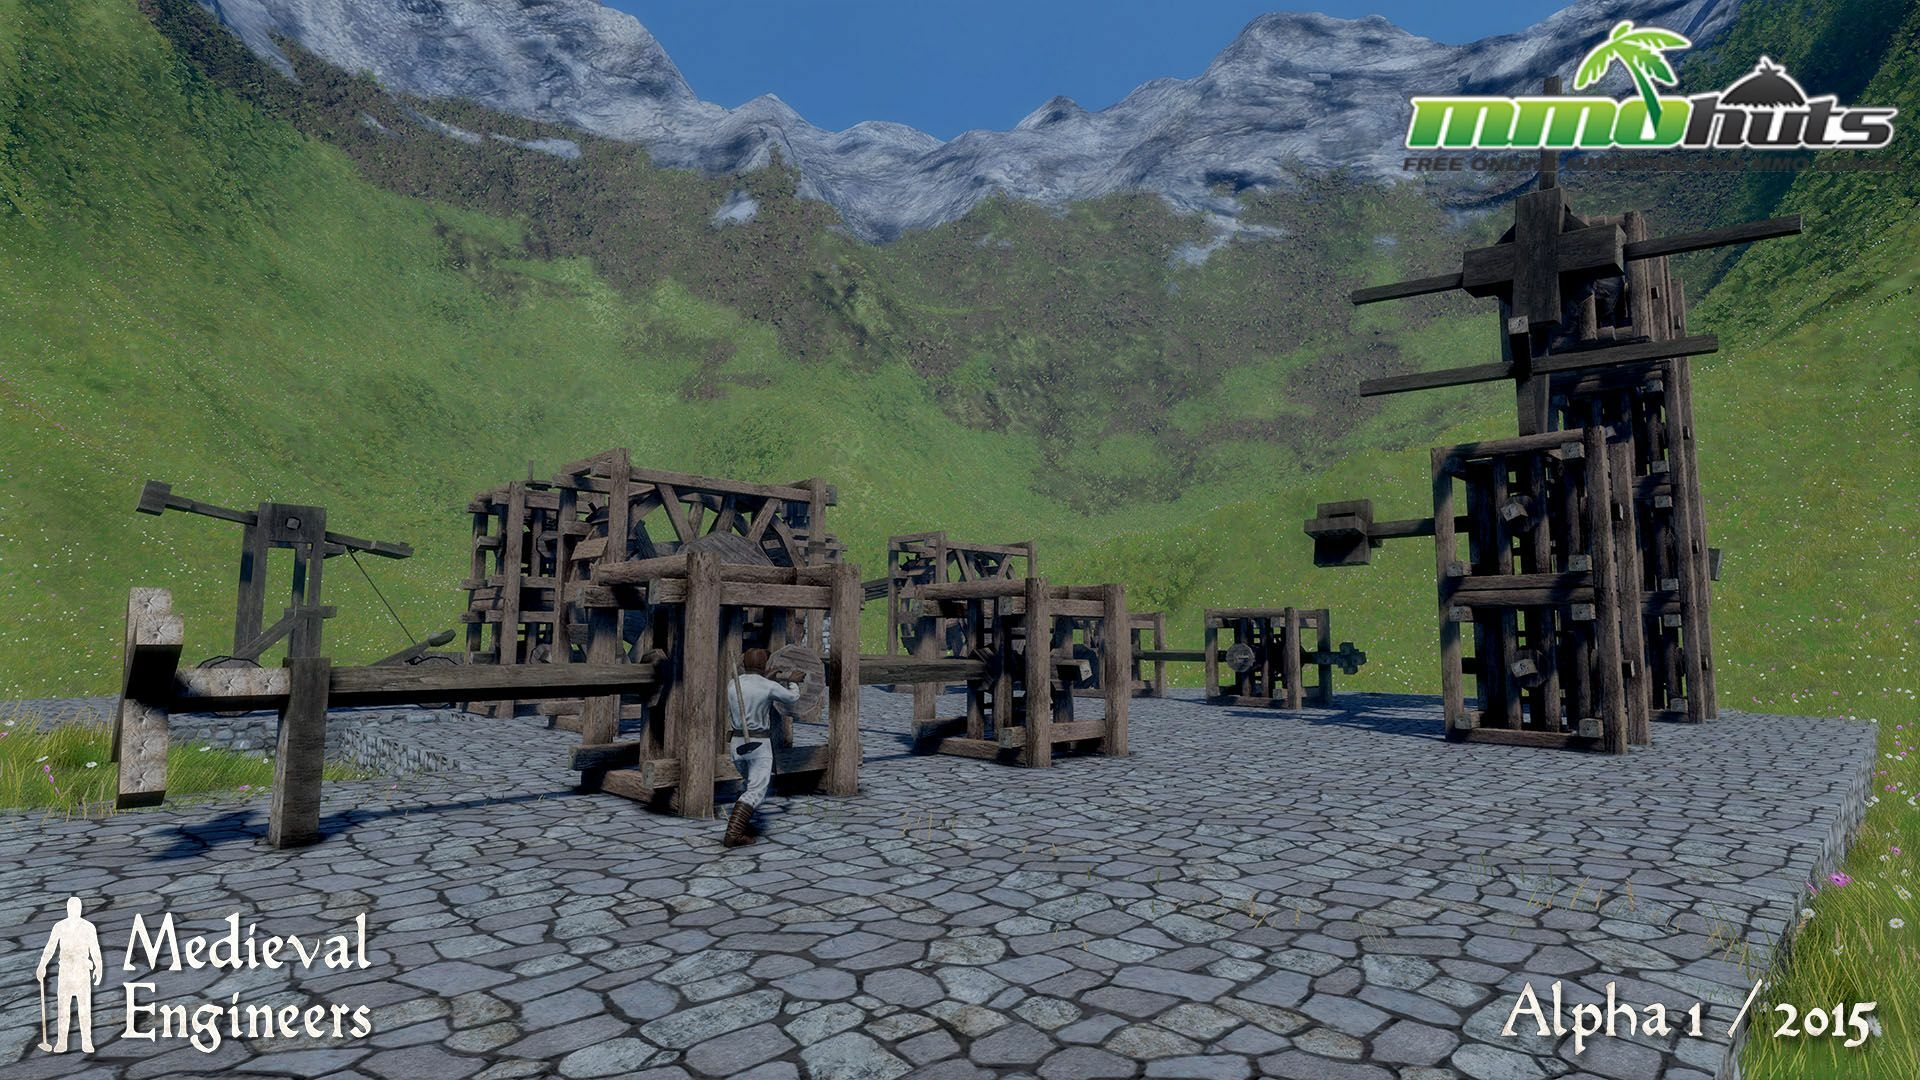 Medieval Engineers Castle Siege and Future Development Interview